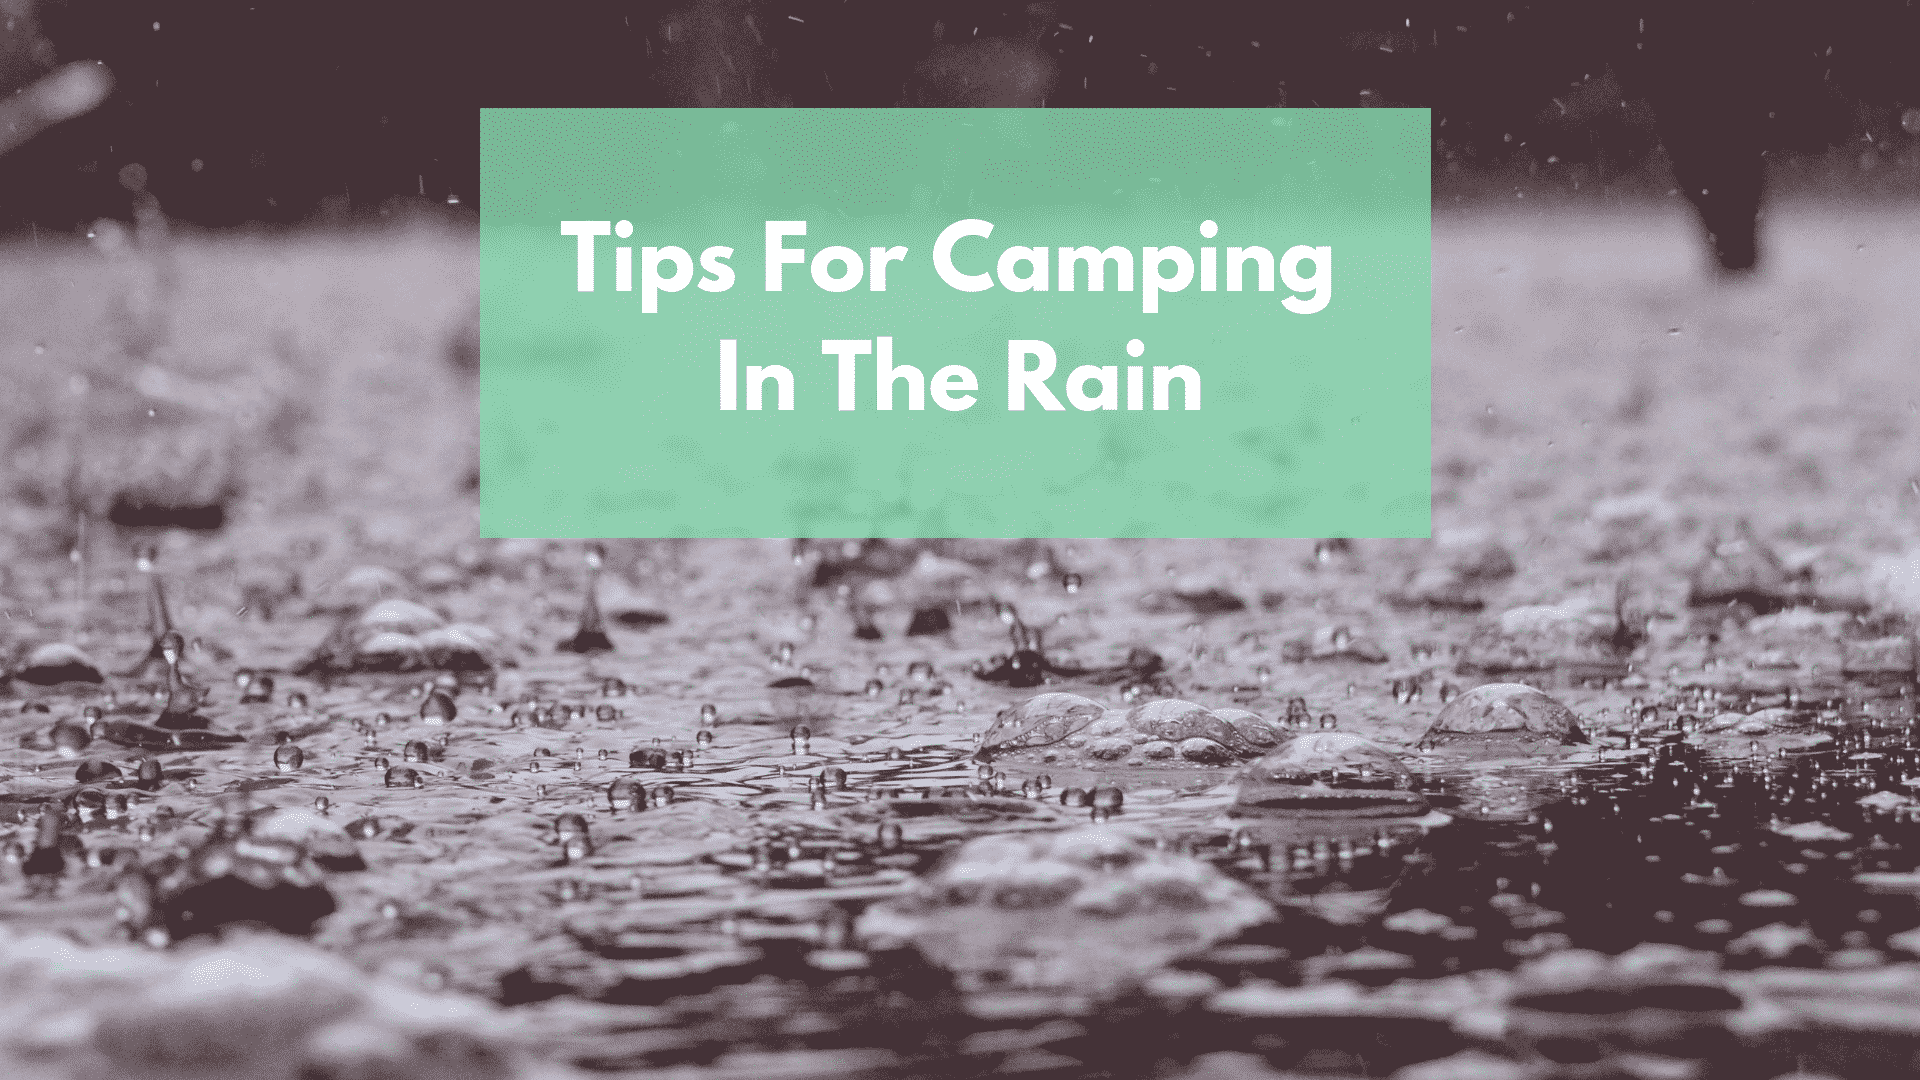 Rainy Background with title Tips for Camping in The Rain